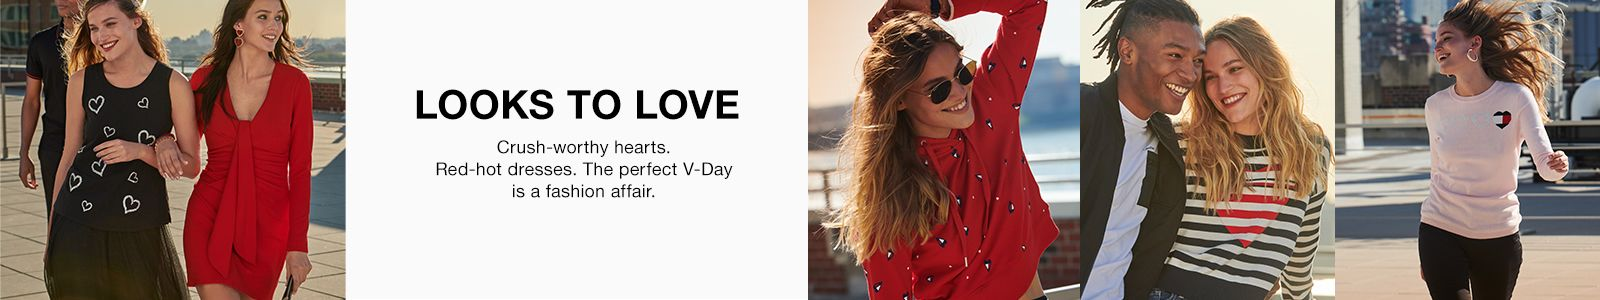 Looks to Love Crush-worthy hearts, Red-hot dresses, the perfect V-Day is a fashion affair